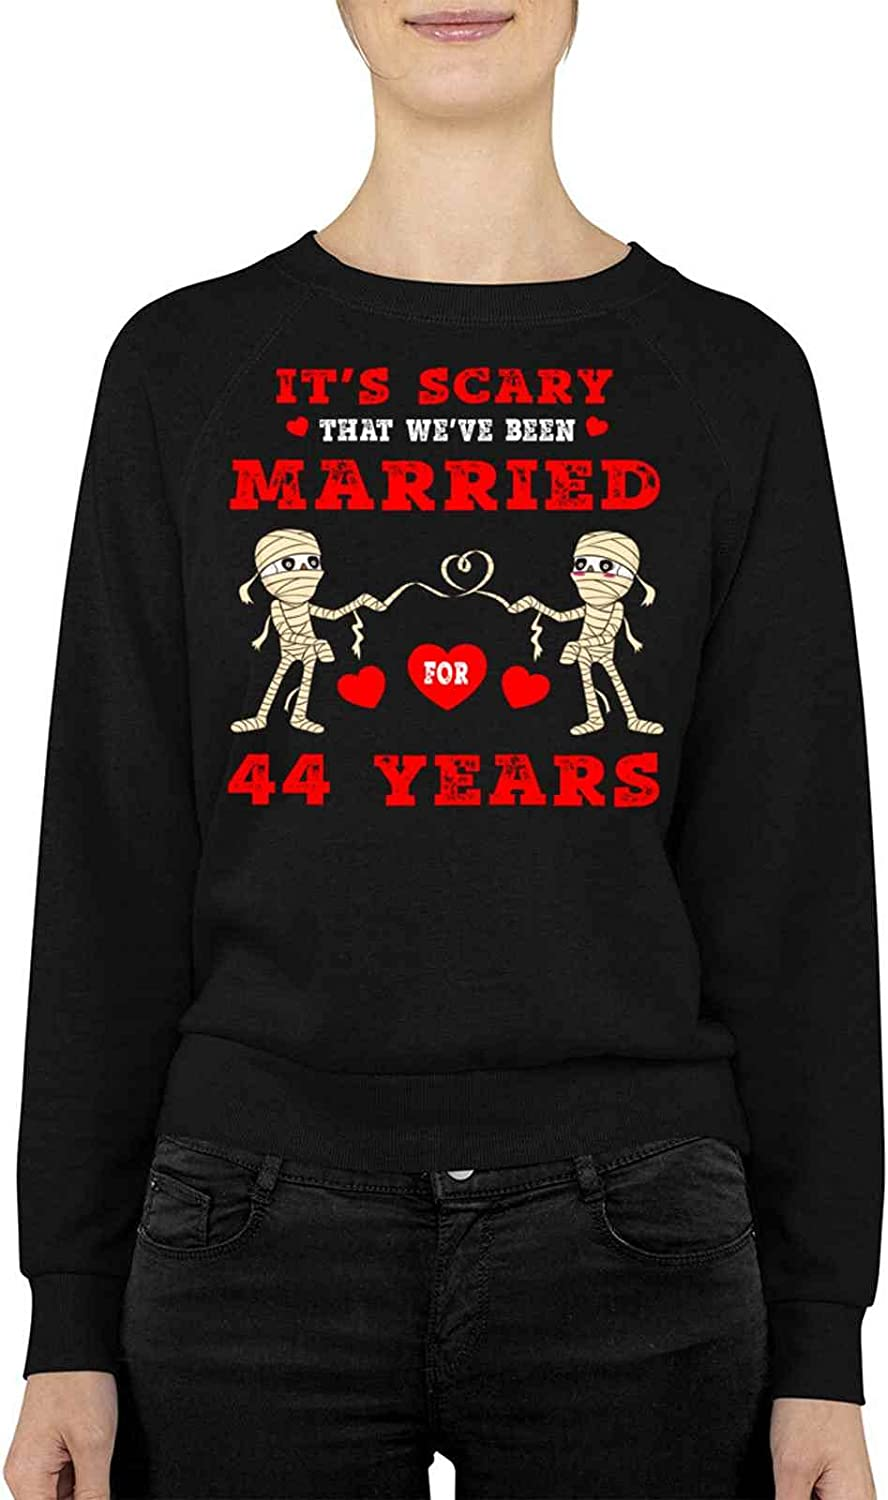 Many All items free shipping popular brands Funny Fe8 ITS SCARY MARRIED 2 FOR Birthday Present Ann For YEARS